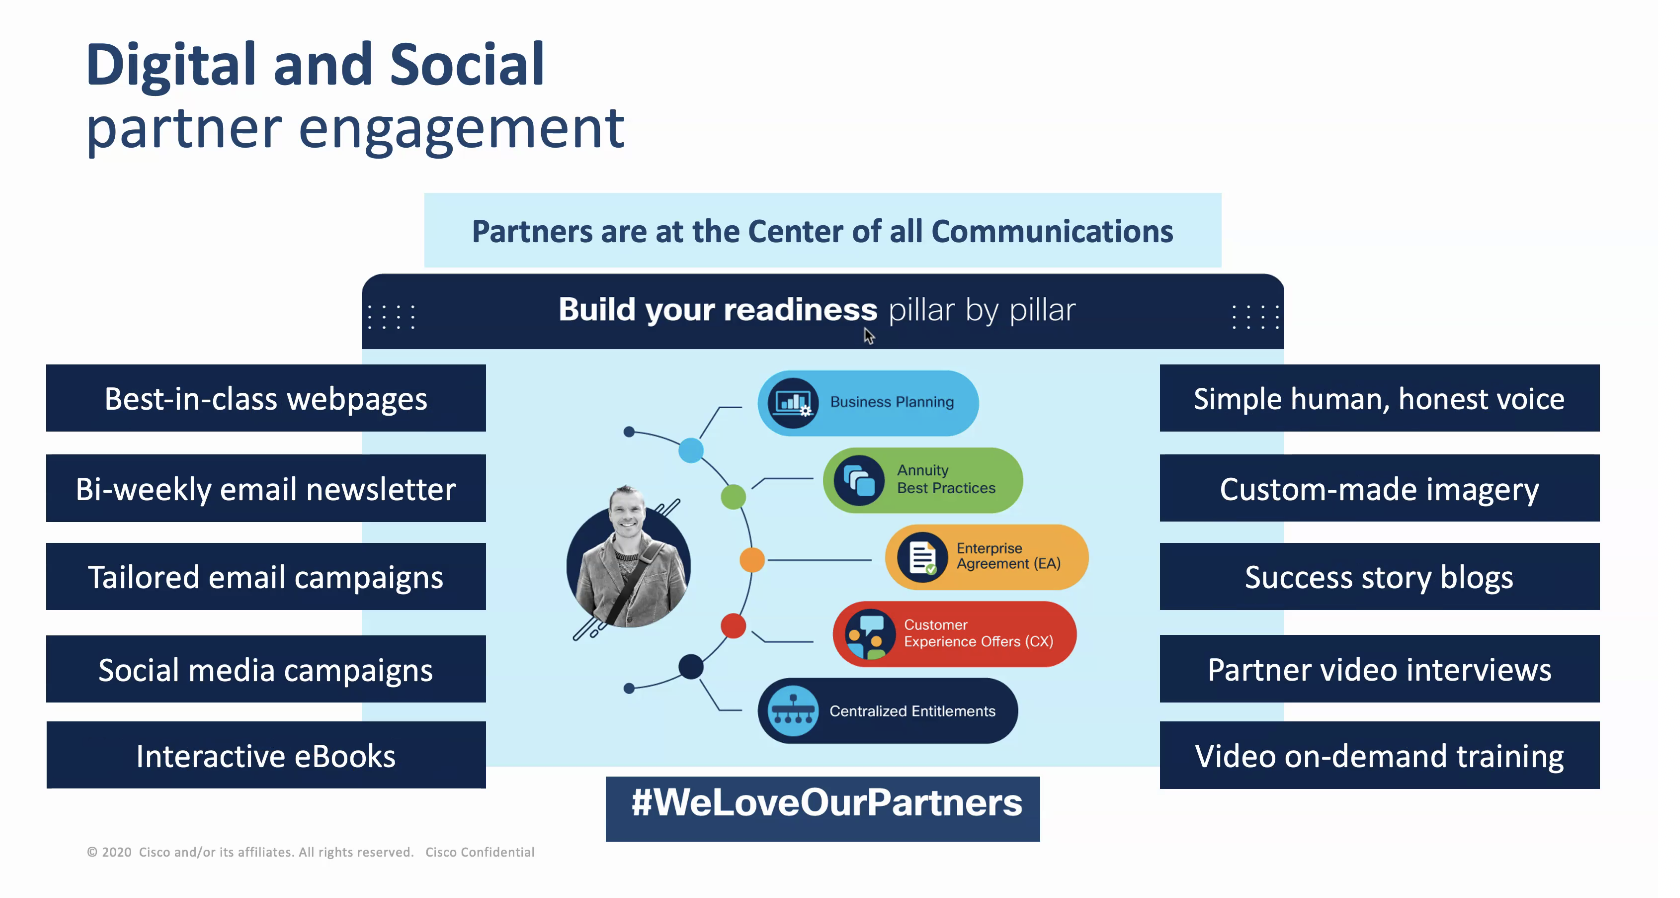 Digital and Social partner engagement: Partners are at the center of all communications